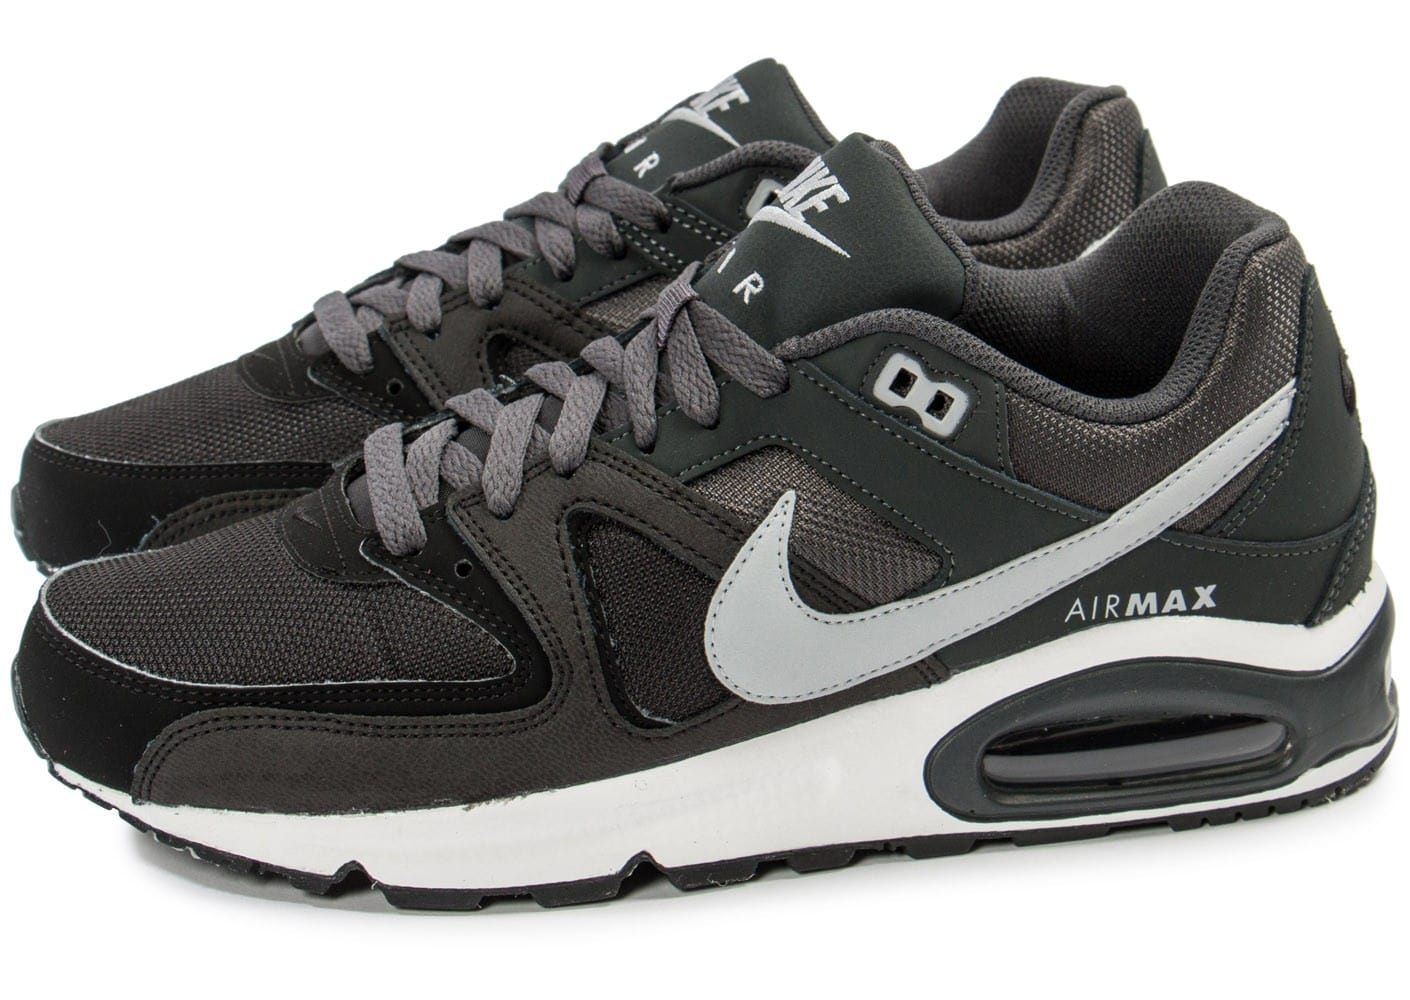 Nike Air Max Command gris anthracite Chaussures Baskets